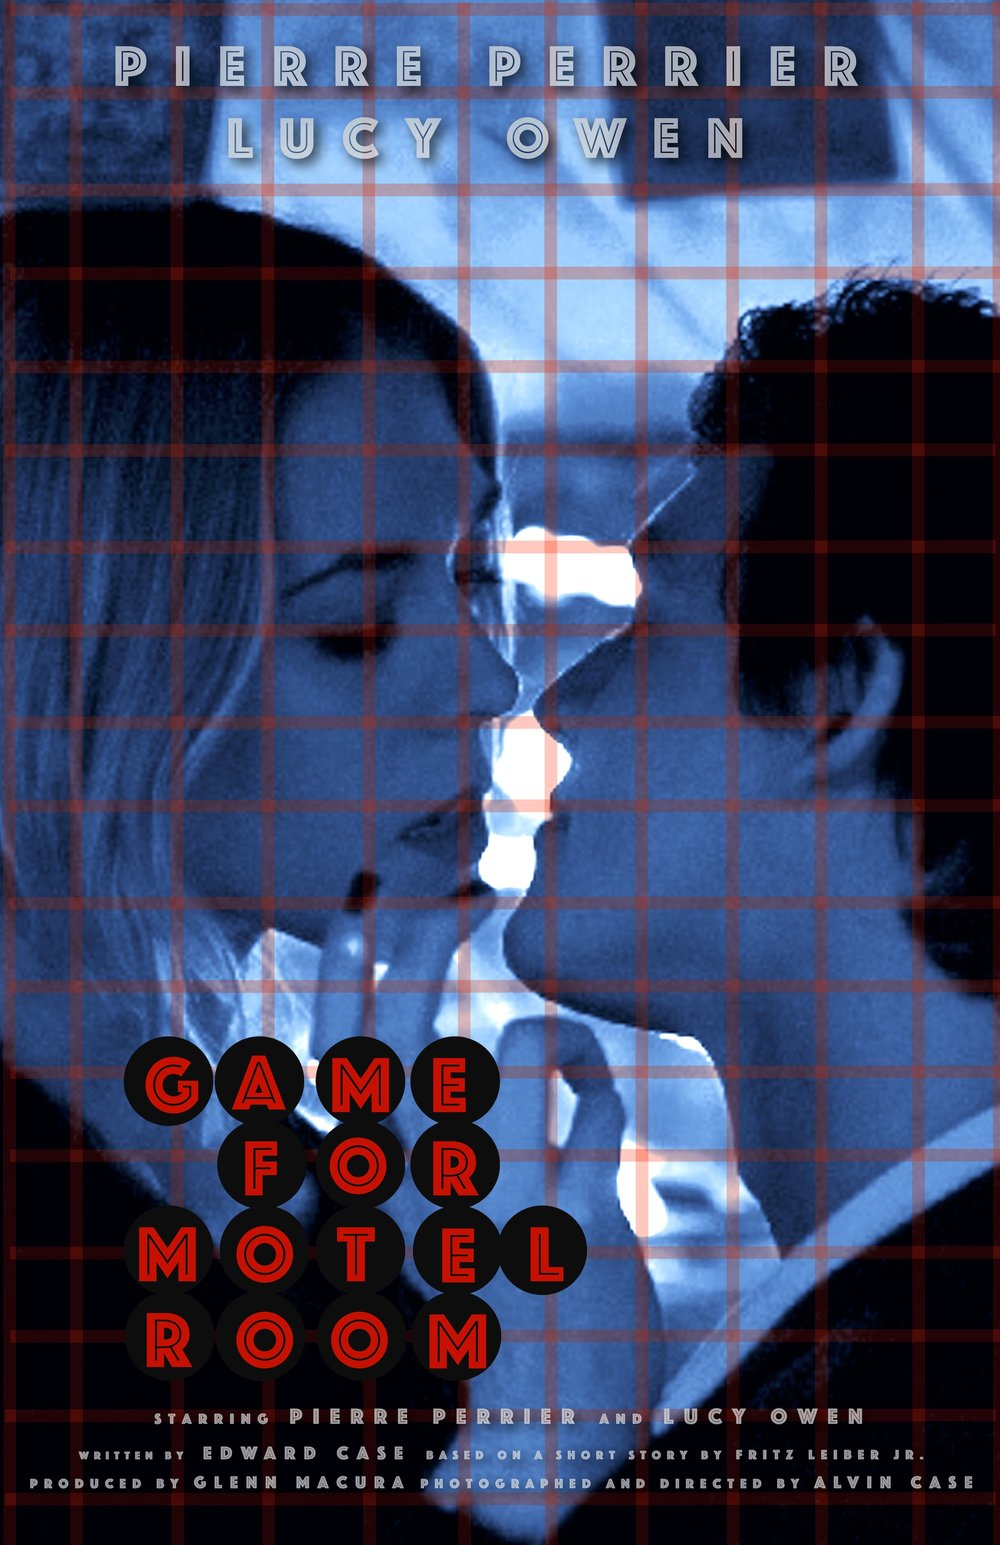 Game For Motel Room  - Based on a Fritz Leiber Jr. science-fiction short story, Game For Motel Room centers on an itinerant man brought in for an unspecified job, which leads to a night on the town with a very odd and beautifully strange woman.